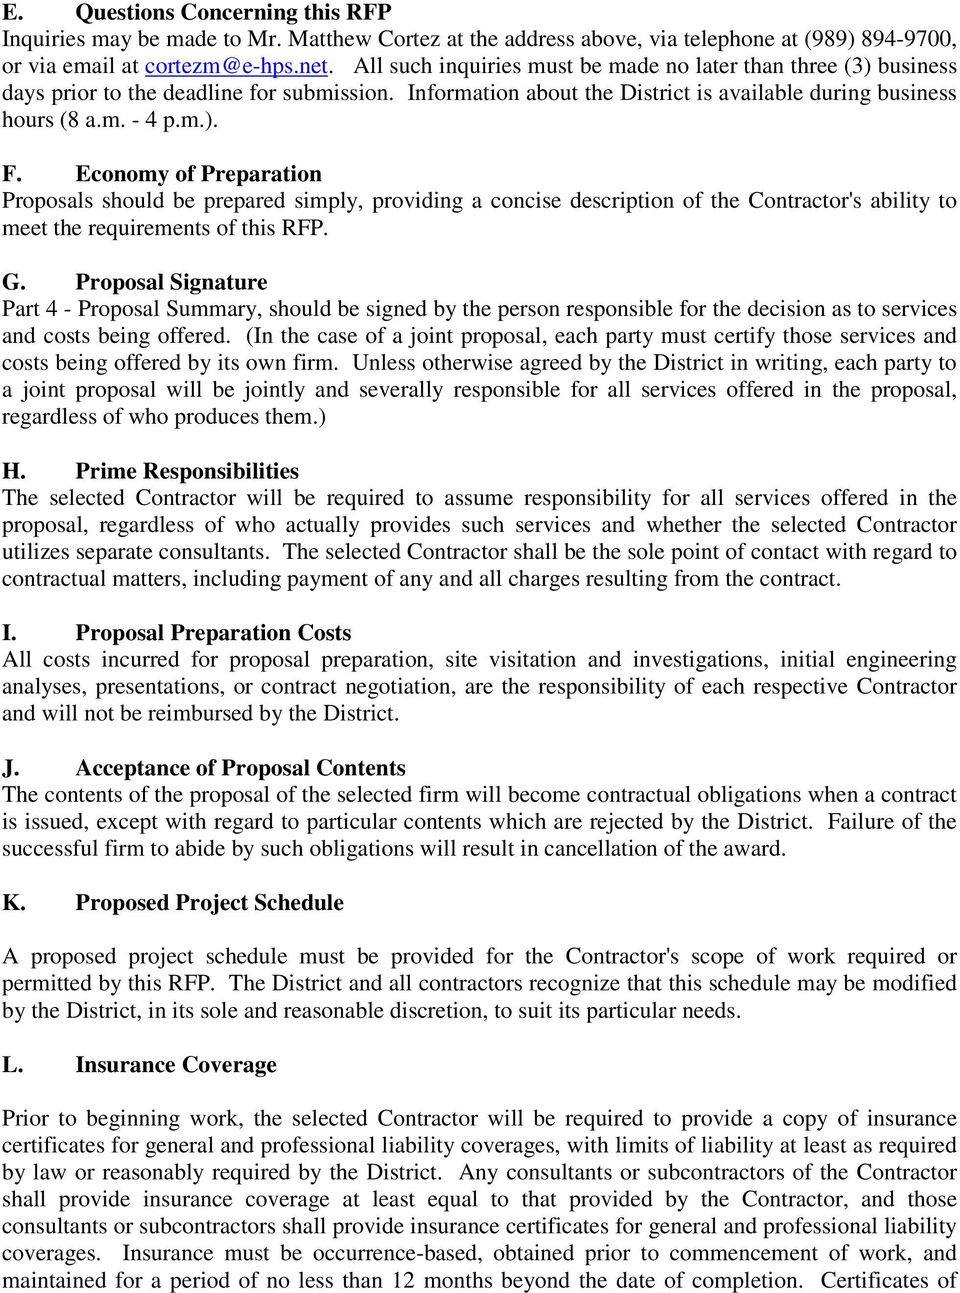 Economy of Preparation Proposals should be prepared simply, providing a concise description of the Contractor's ability to meet the requirements of this RFP. G.